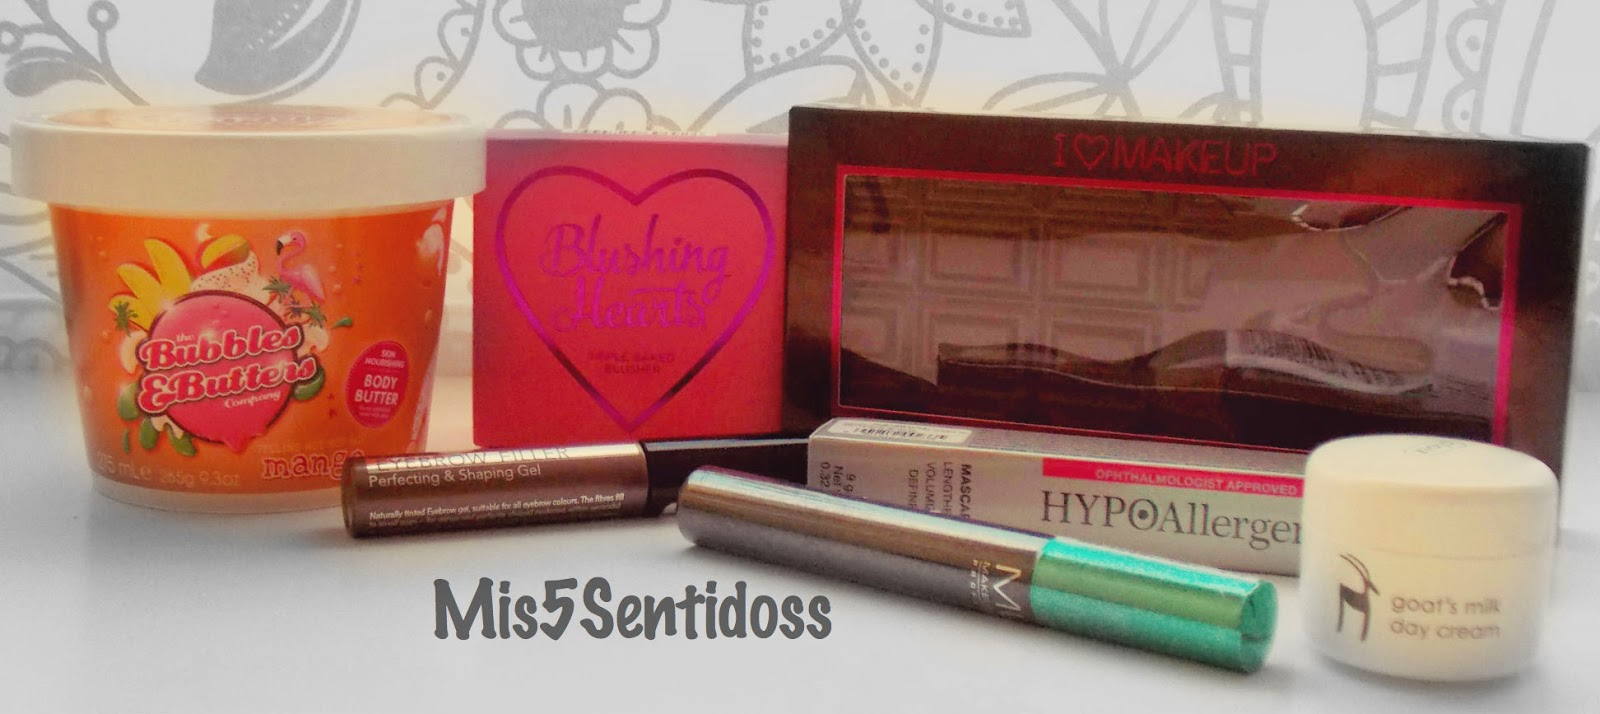 Pedido a Maquillalia: Catrice, Bubbles&Butters, I Heart Makeup, Mua y Catrice